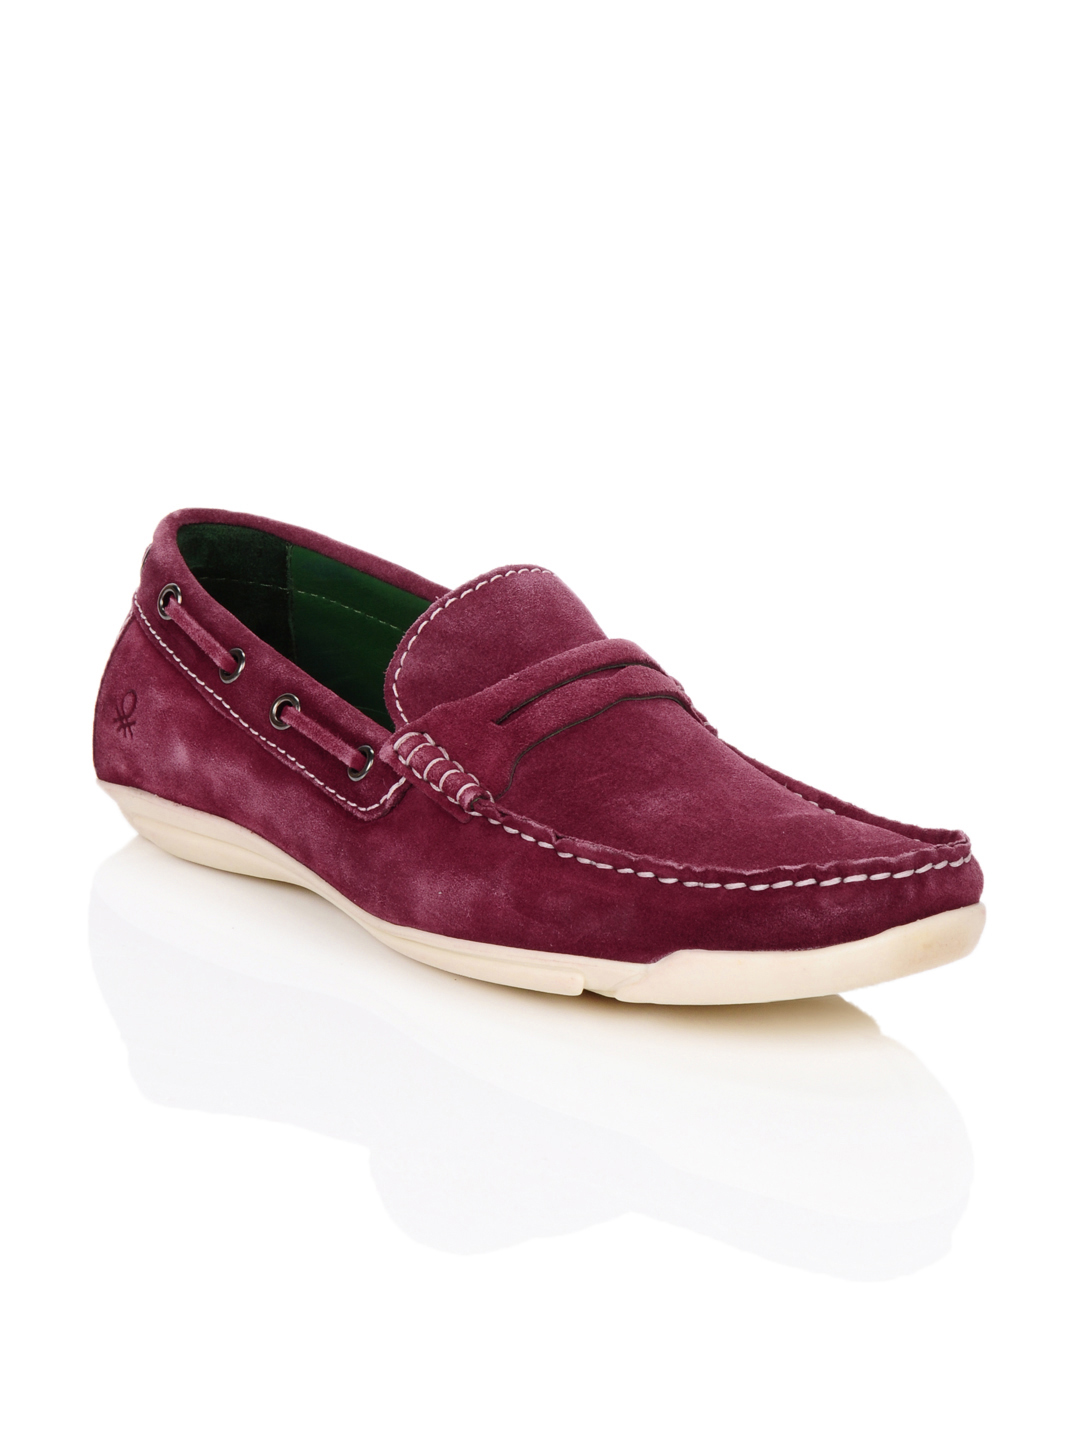 United Colors of Benetton Men Burgundy Shoes